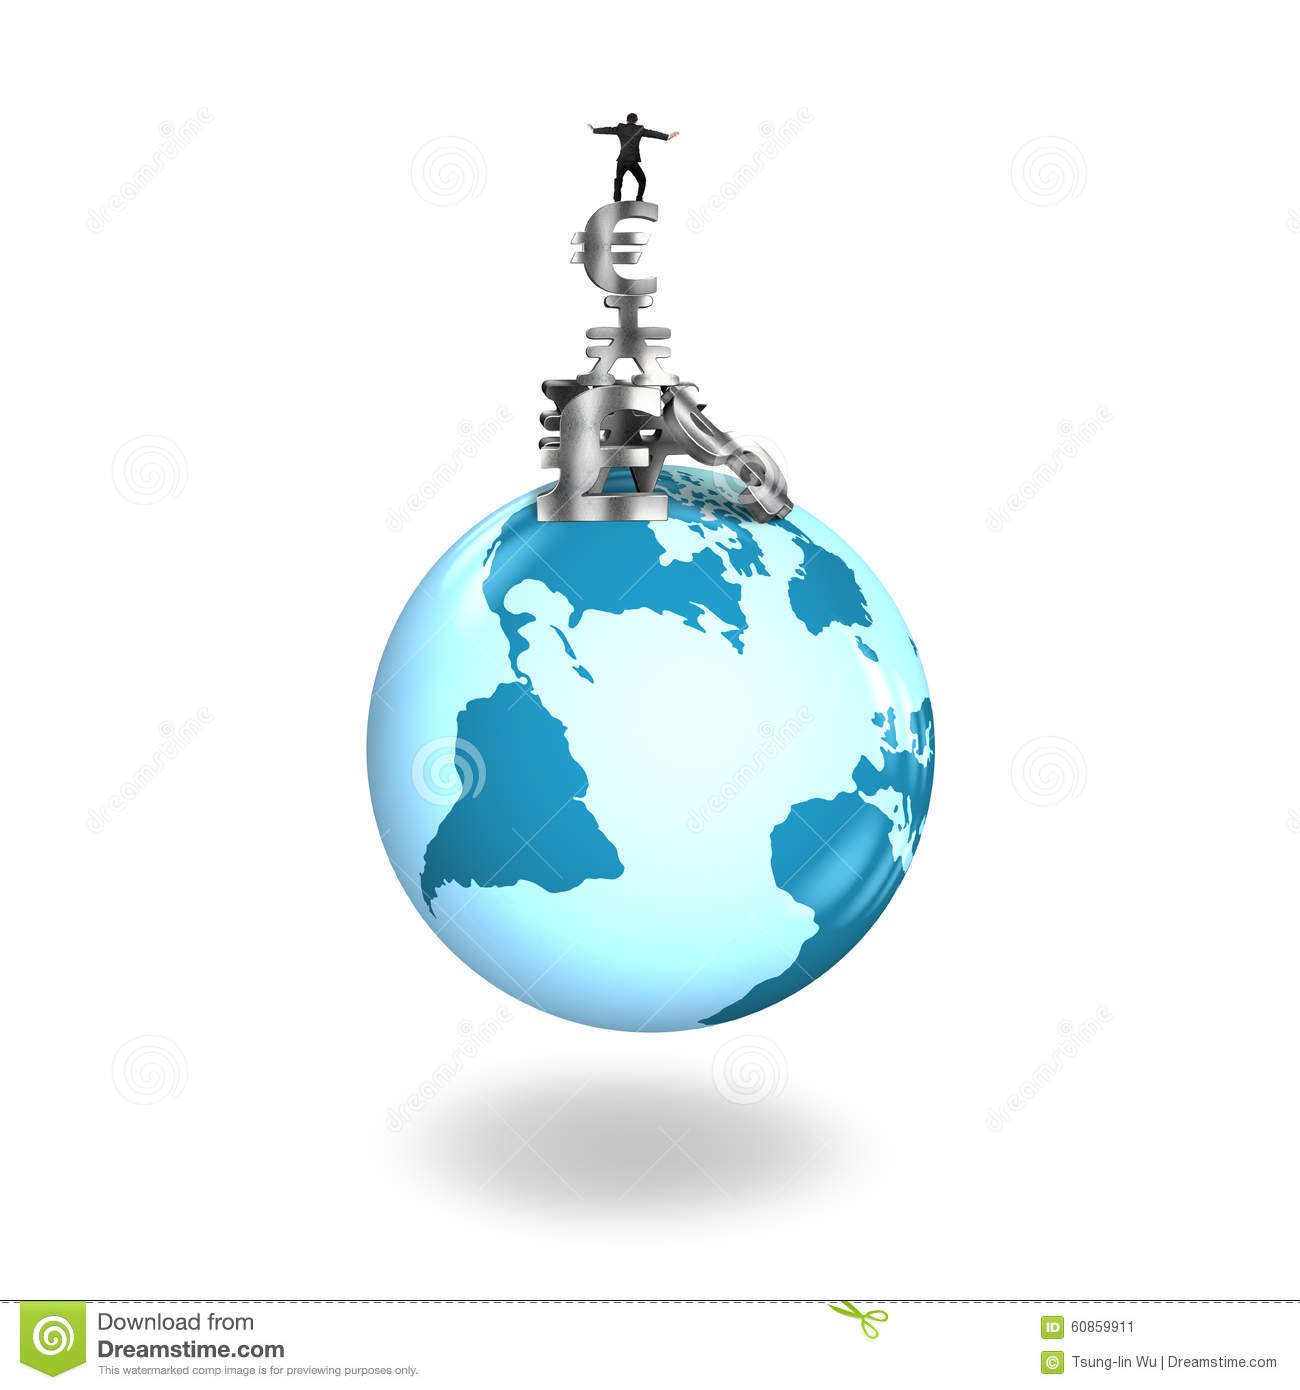 Man Balancing Stack Money Symbols On Globe World Map Stock Image